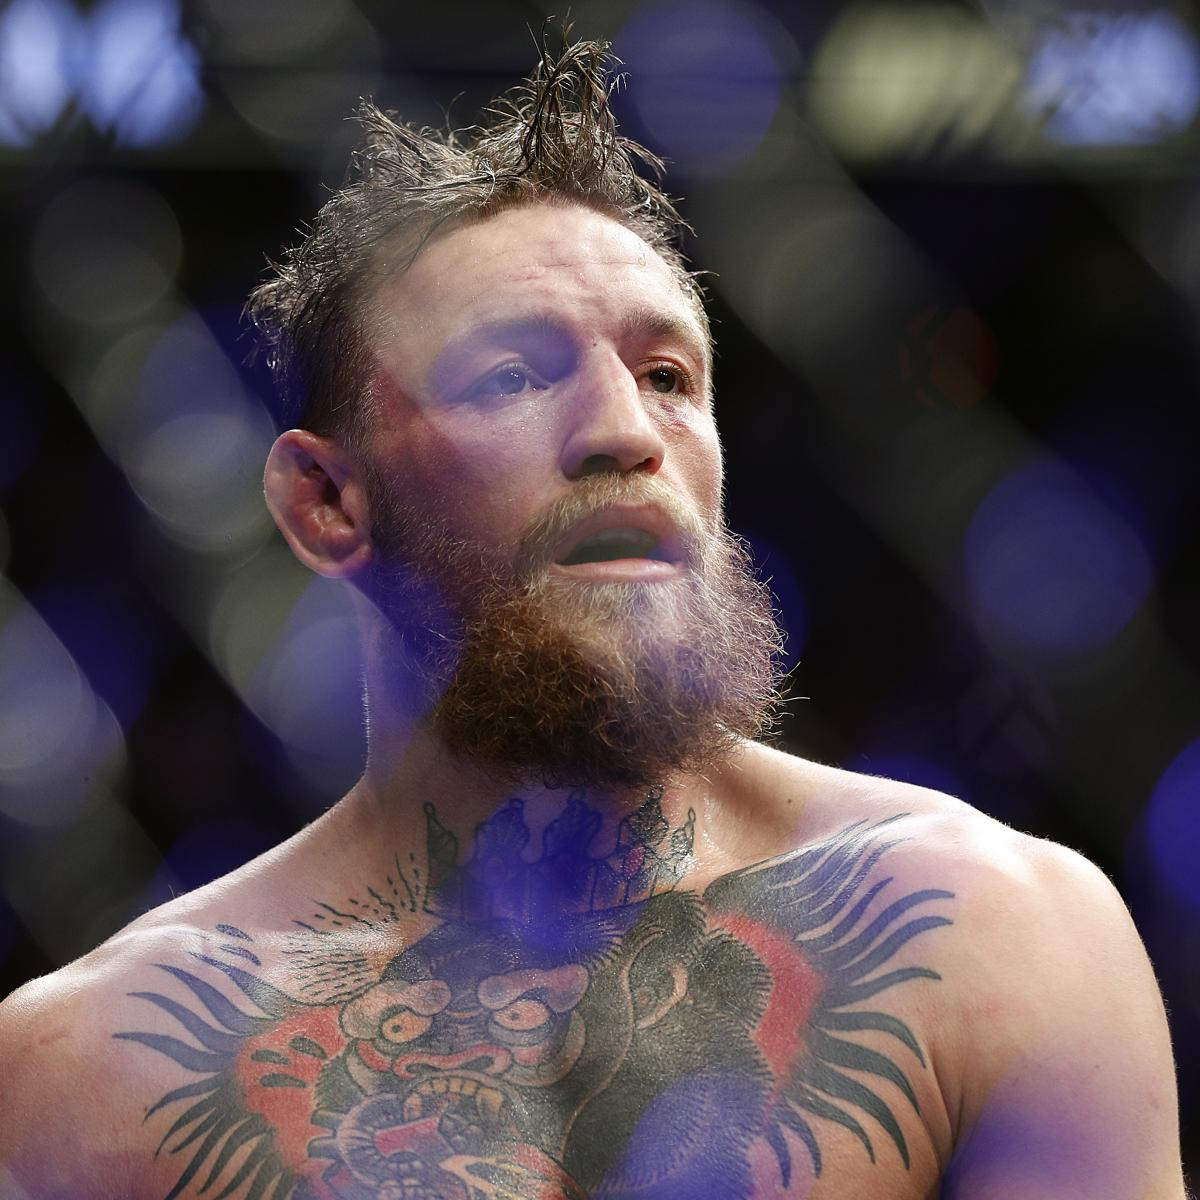 TMZ Sports obtained footage of Conor McGregor 's arrest in March after he smashed the cell phone of a fan who tried to take his picture...